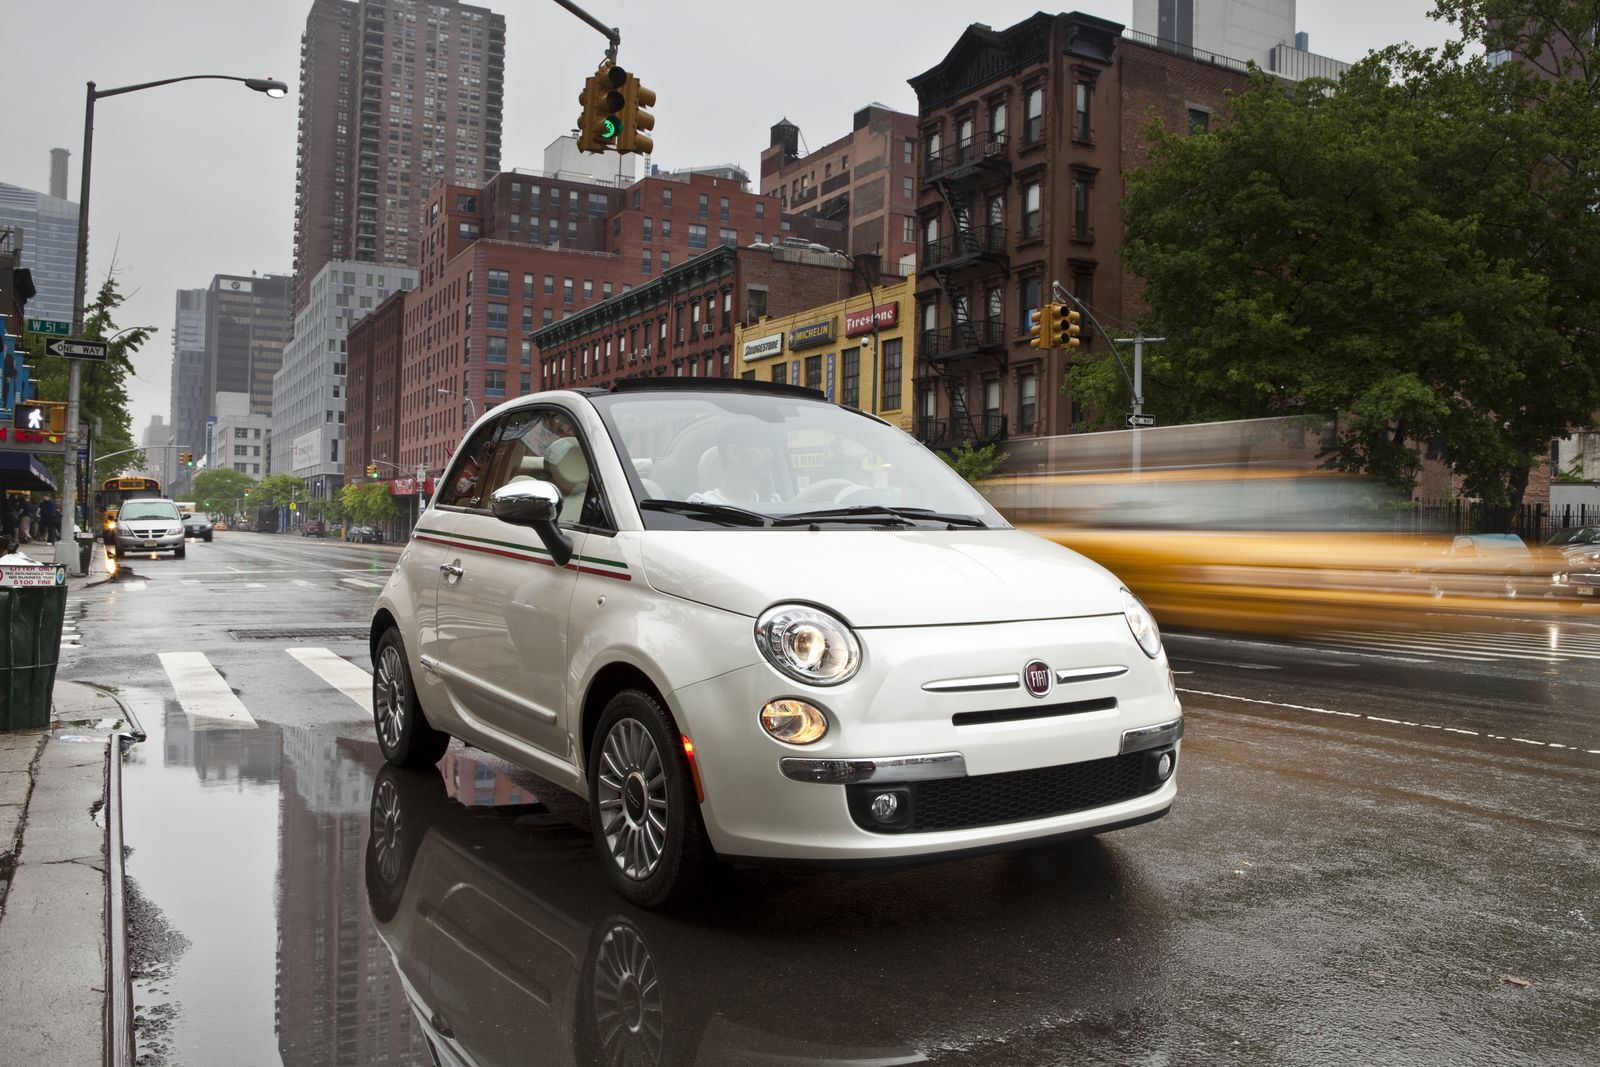 york phone just exterior the accesssories display body fiat beginning stay usa as more upgrades key auto accessories are new is tuned there show this and etc interior wheels car on available kits a lot covers at fobs